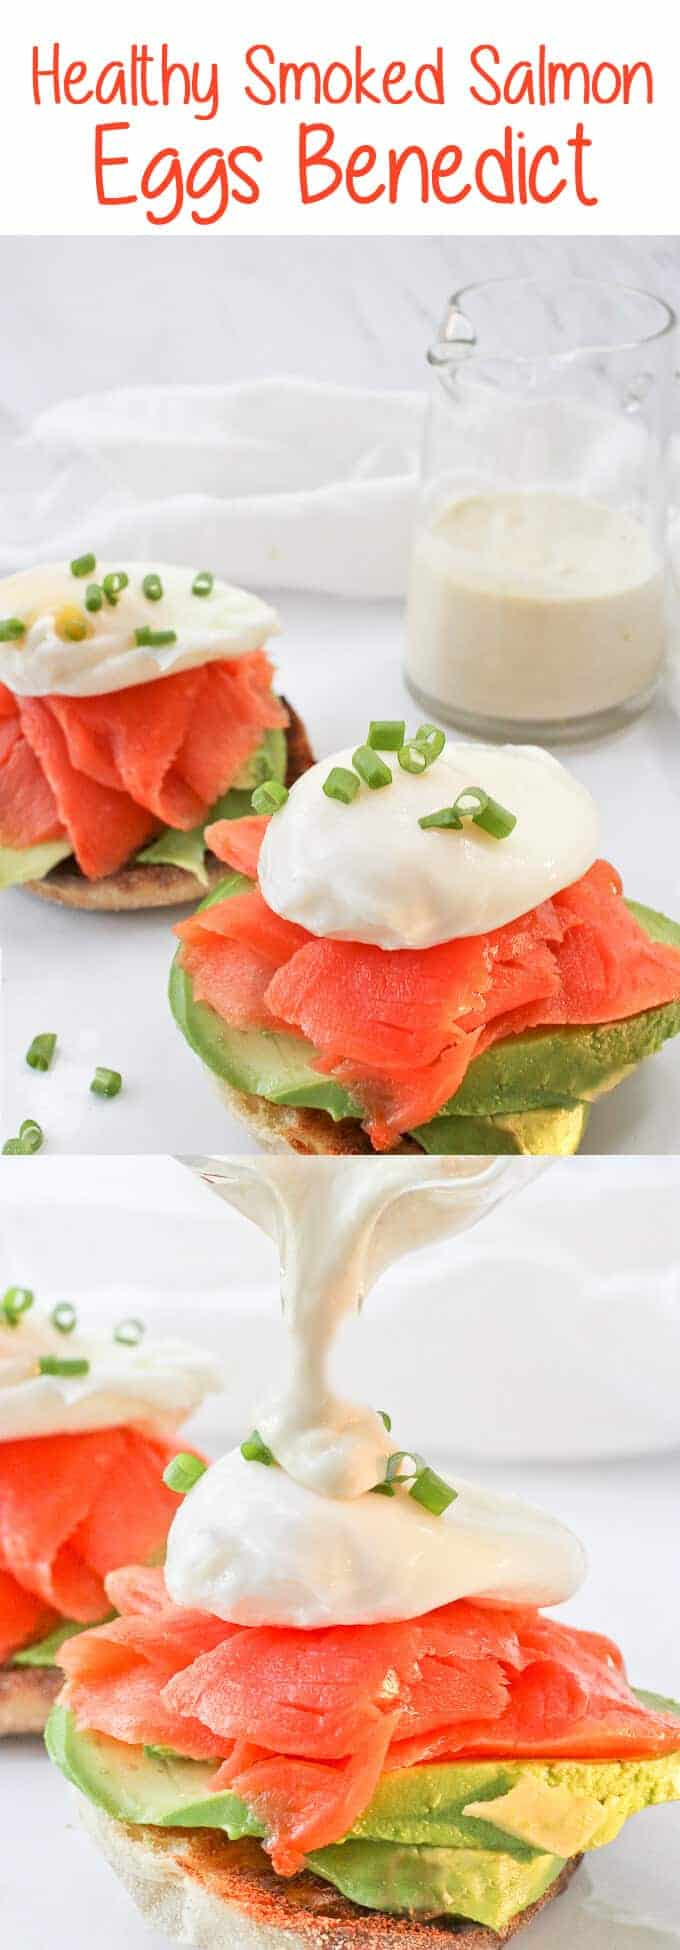 This Healthy Smoked Salmon Eggs Benedict is made with smoked salmon, poached eggs, and a creamy yogurt sauce, and is a lighter take on the breakfast classic!